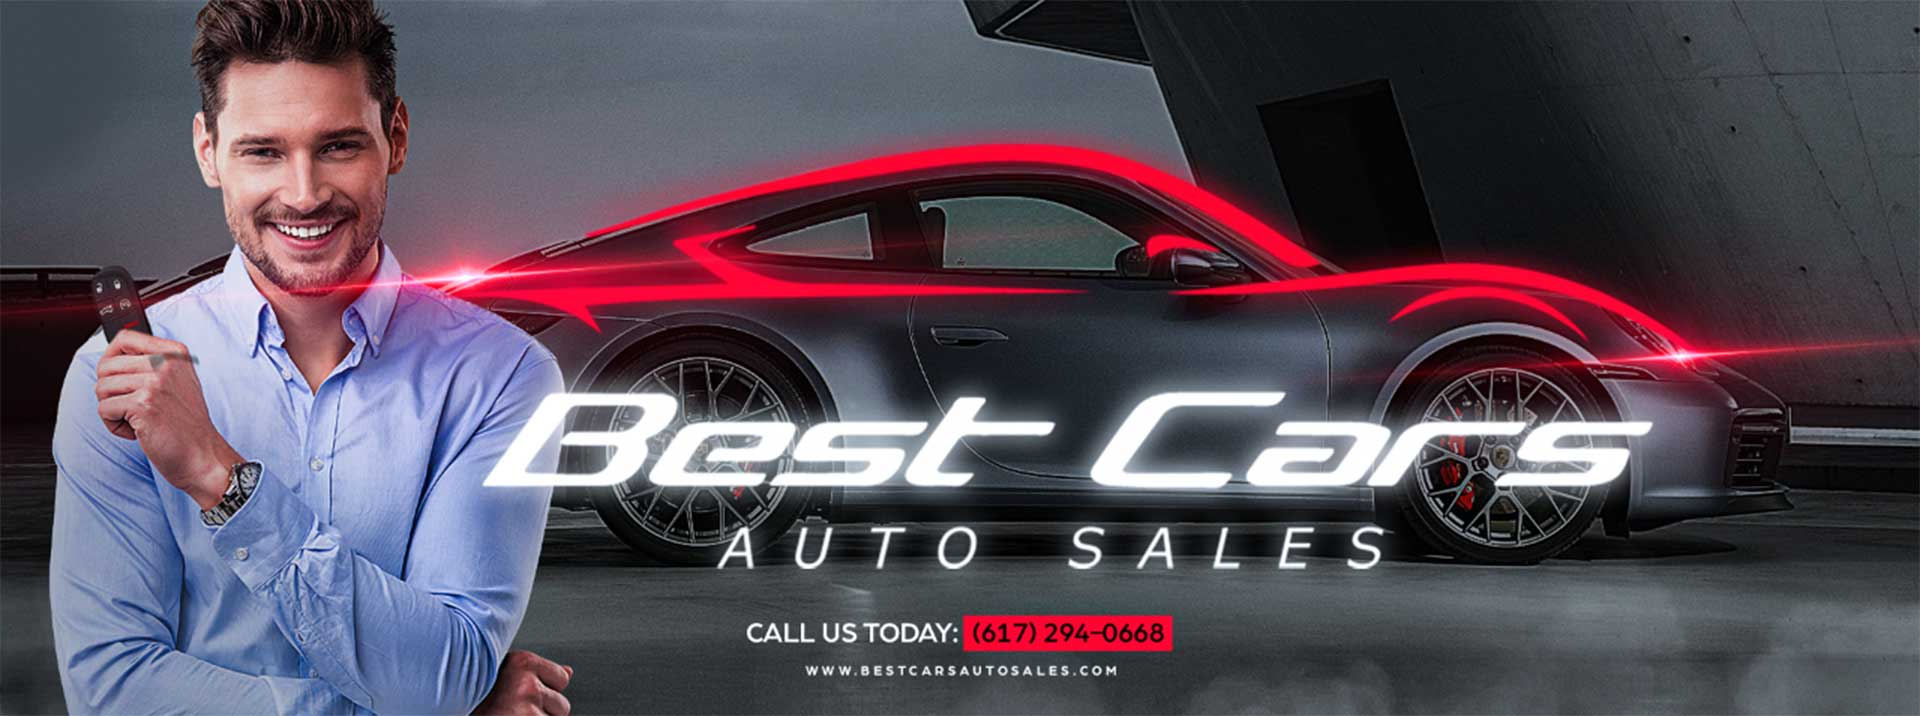 Best Cars Auto Sales